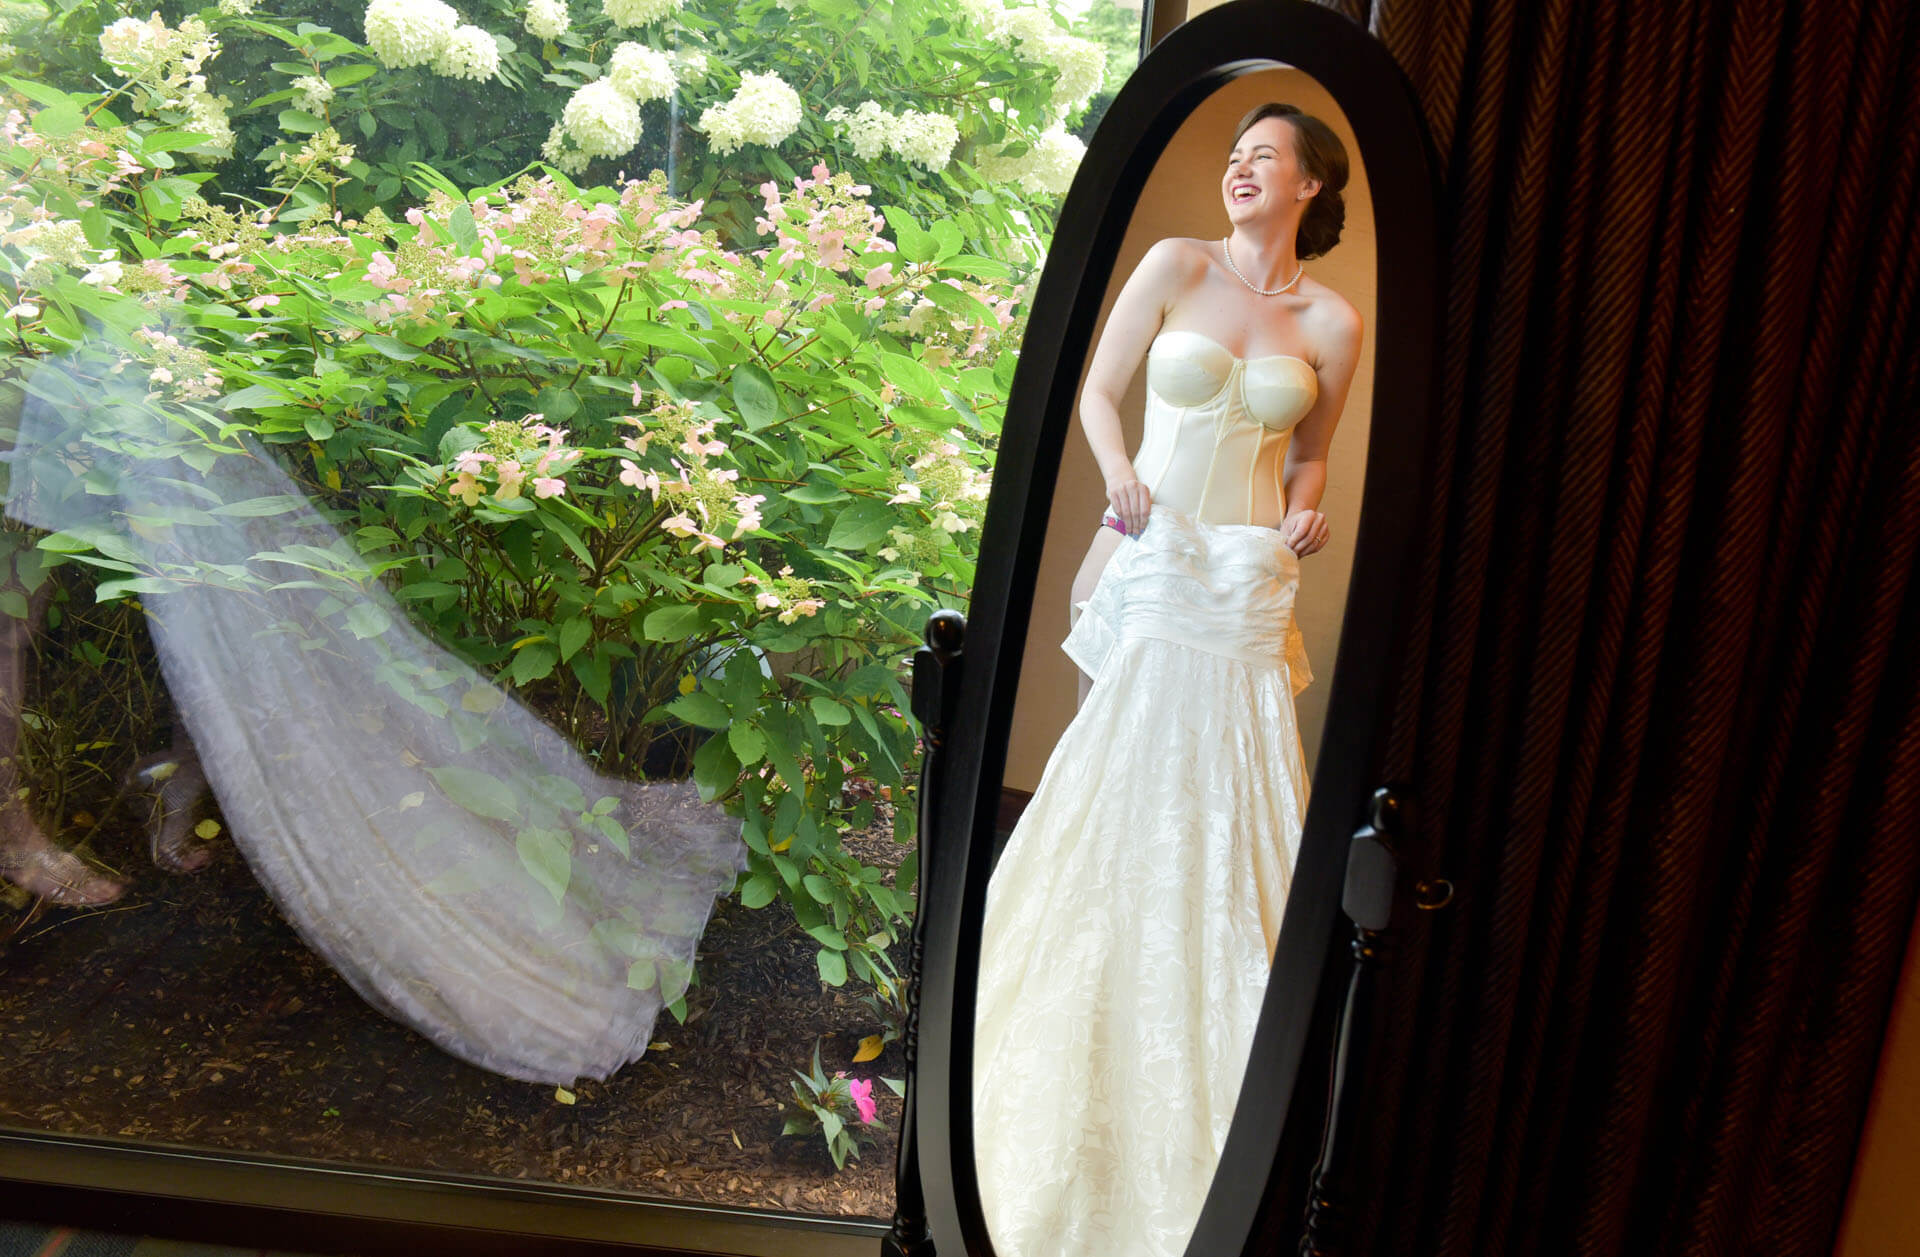 A bride gets dressed in the mirror in Ann Arbor, Michigan.